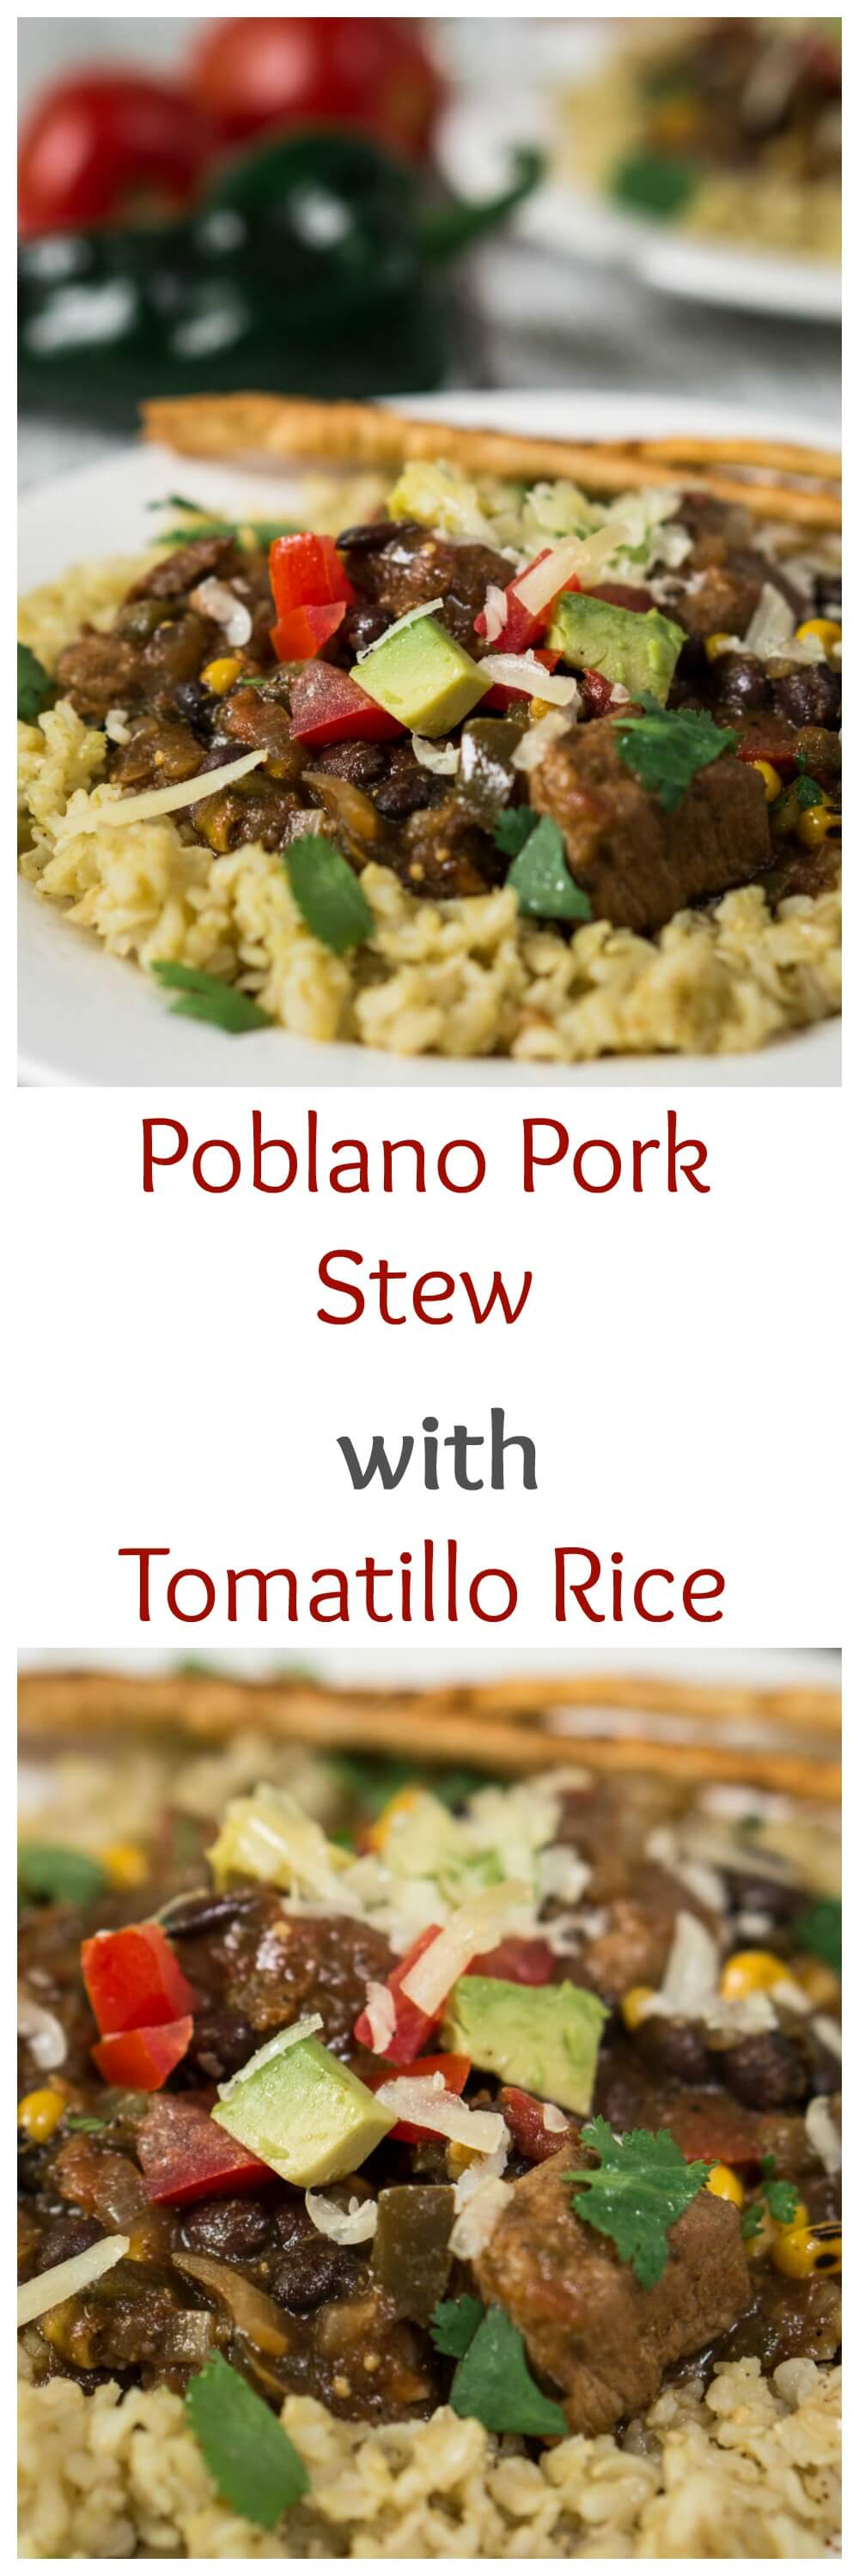 Poblano Pork Stew over Tomatillo Rice is rich in flavors and has a deliciously warm kick. It can be made in a crockpot or simmered on the stove. Either way, you're going to love this dish | HostessAtHeart.com #poblano #fiestamexicana #mexicanfood | Mexican Food | Poblano Peppers